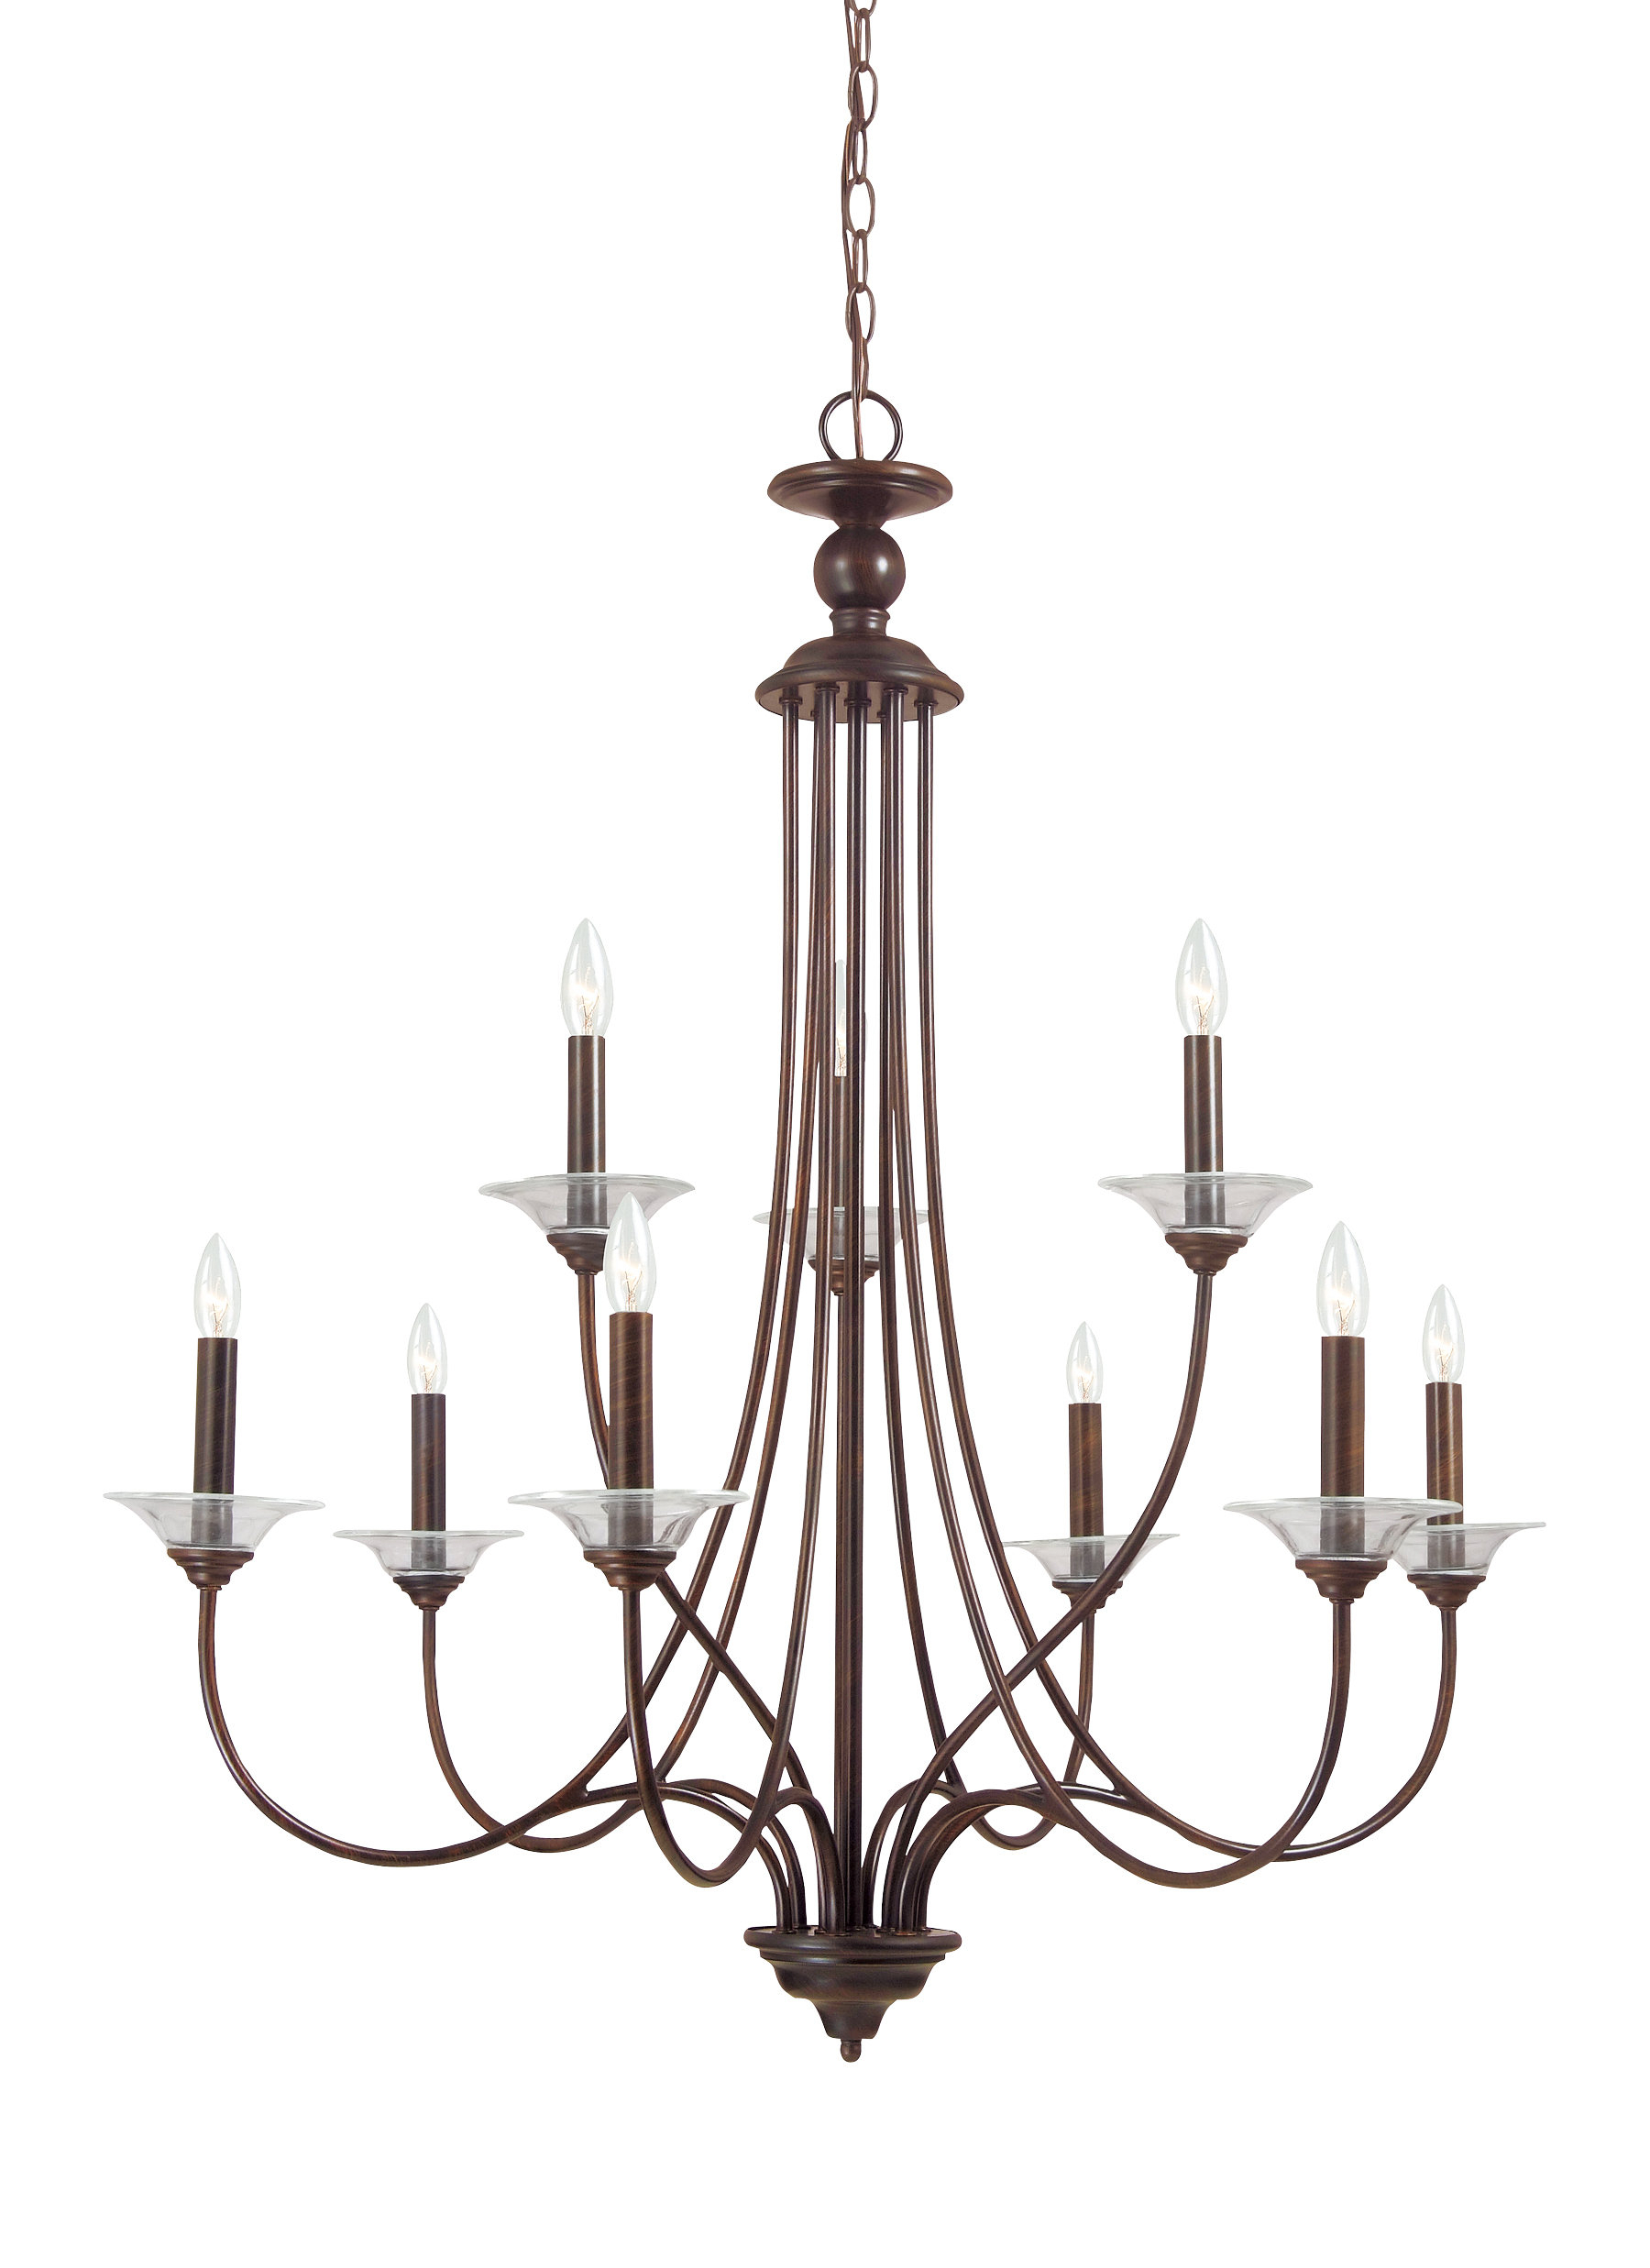 Kenedy 9 Light Candle Style Chandeliers Pertaining To Well Known Barbro 9 Light Chandelier (View 6 of 20)